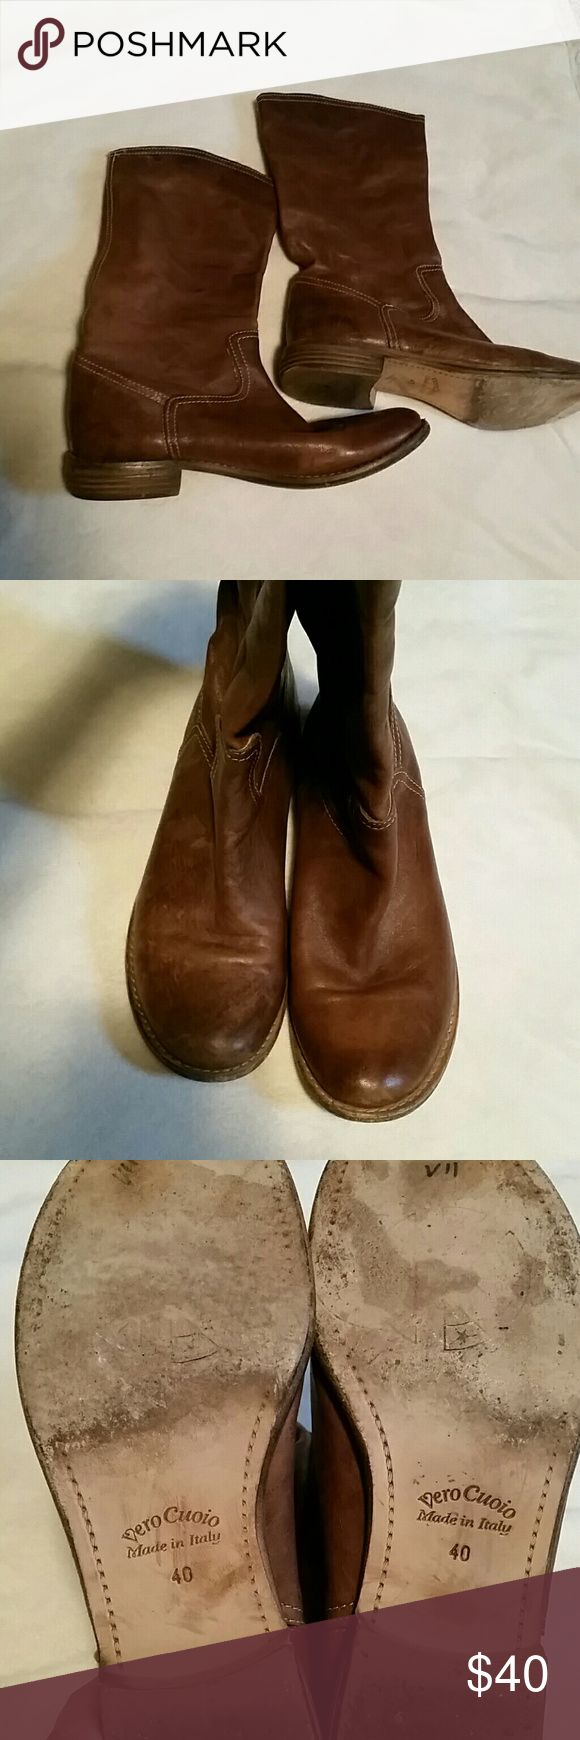 Vero Cuoio Italian leather brown flat boots Beautiful boots,  super soft inside and out. Gently worn and still in beautiful condition. Solid and sturdy construction. Vero Cuoio  Shoes Ankle Boots & Booties